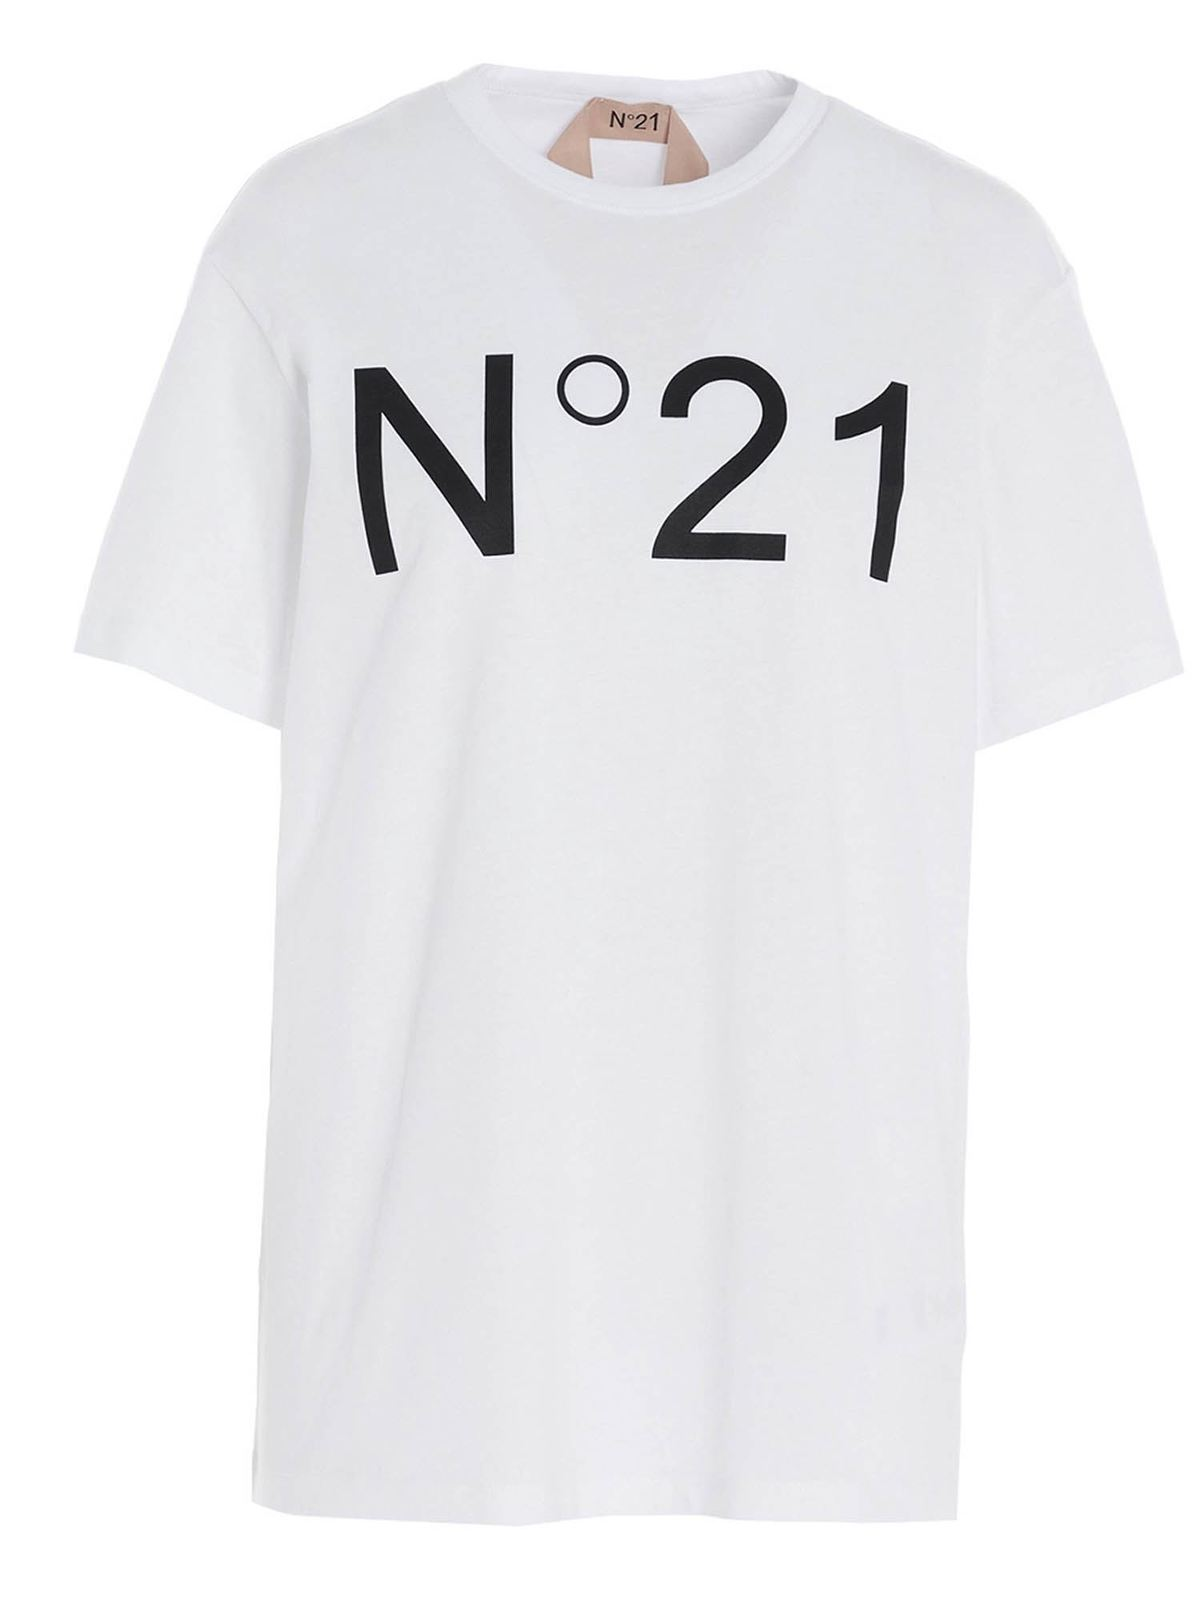 N°21 LOGO T-SHIRT IN WHITE